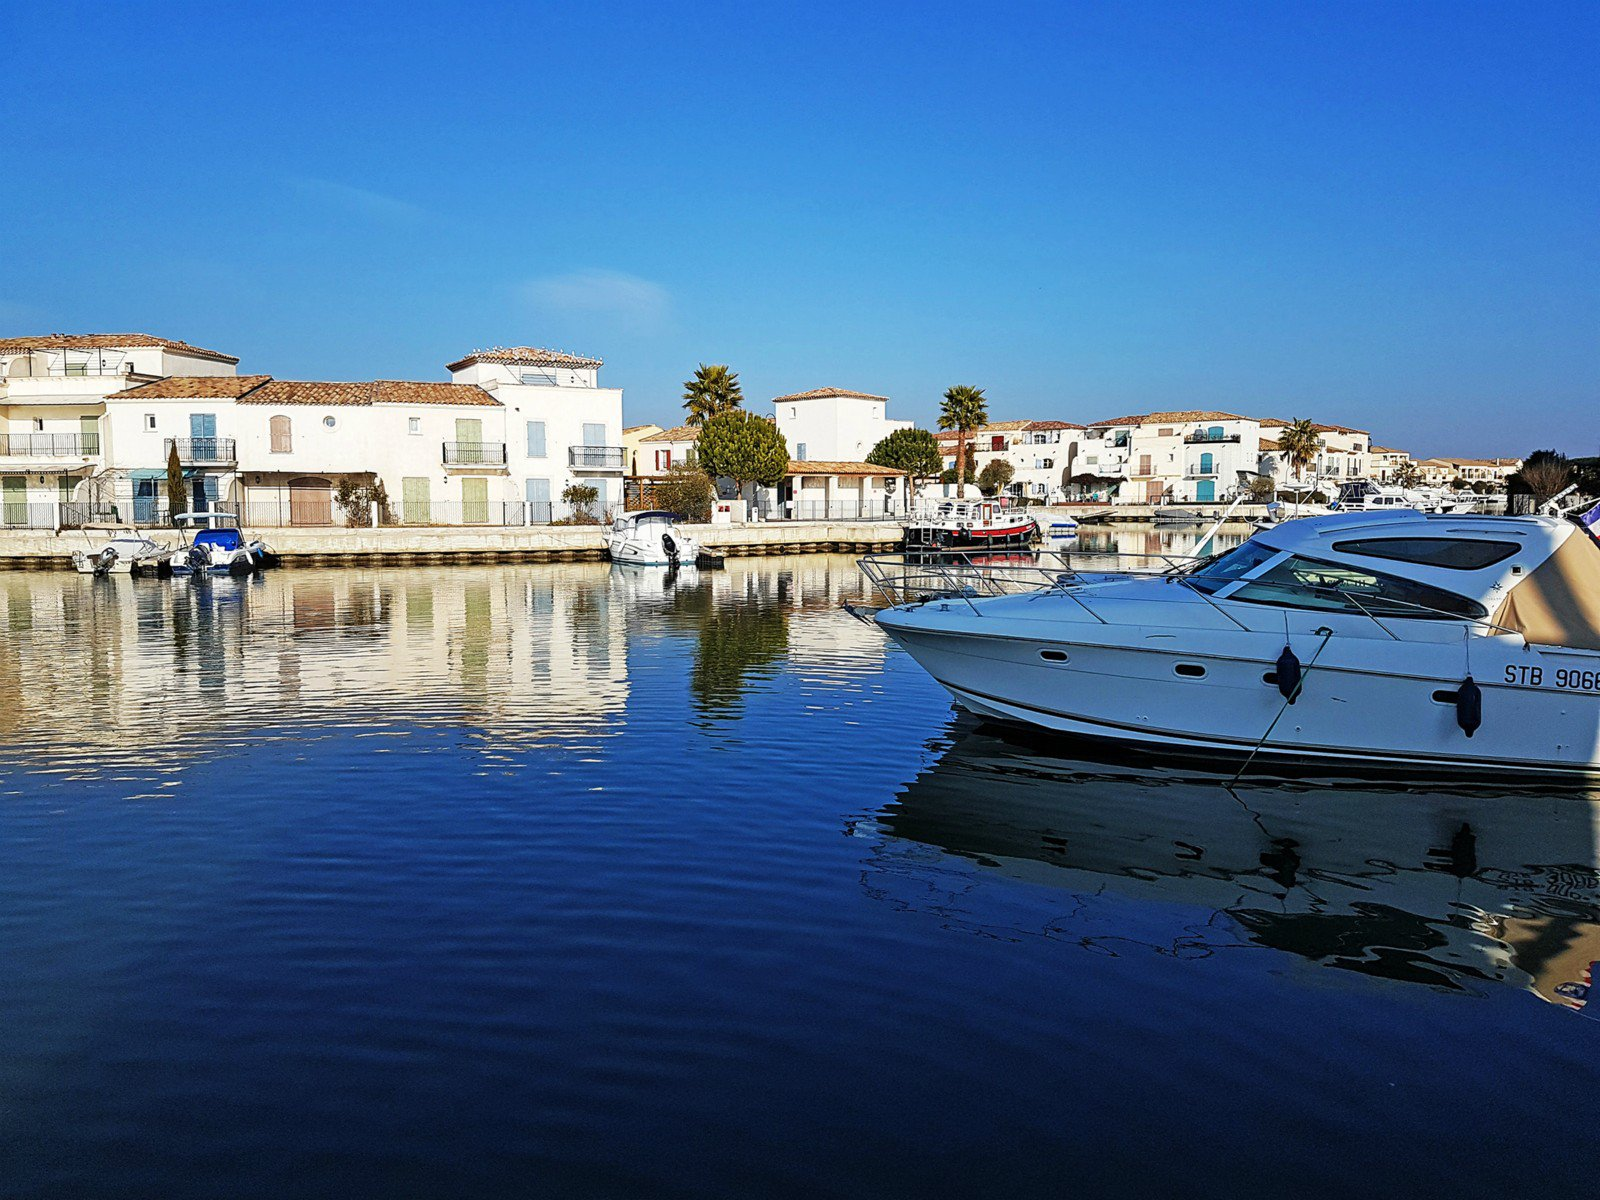 New development project with houses and a private marina in the medieval city of Aigues Mortes.